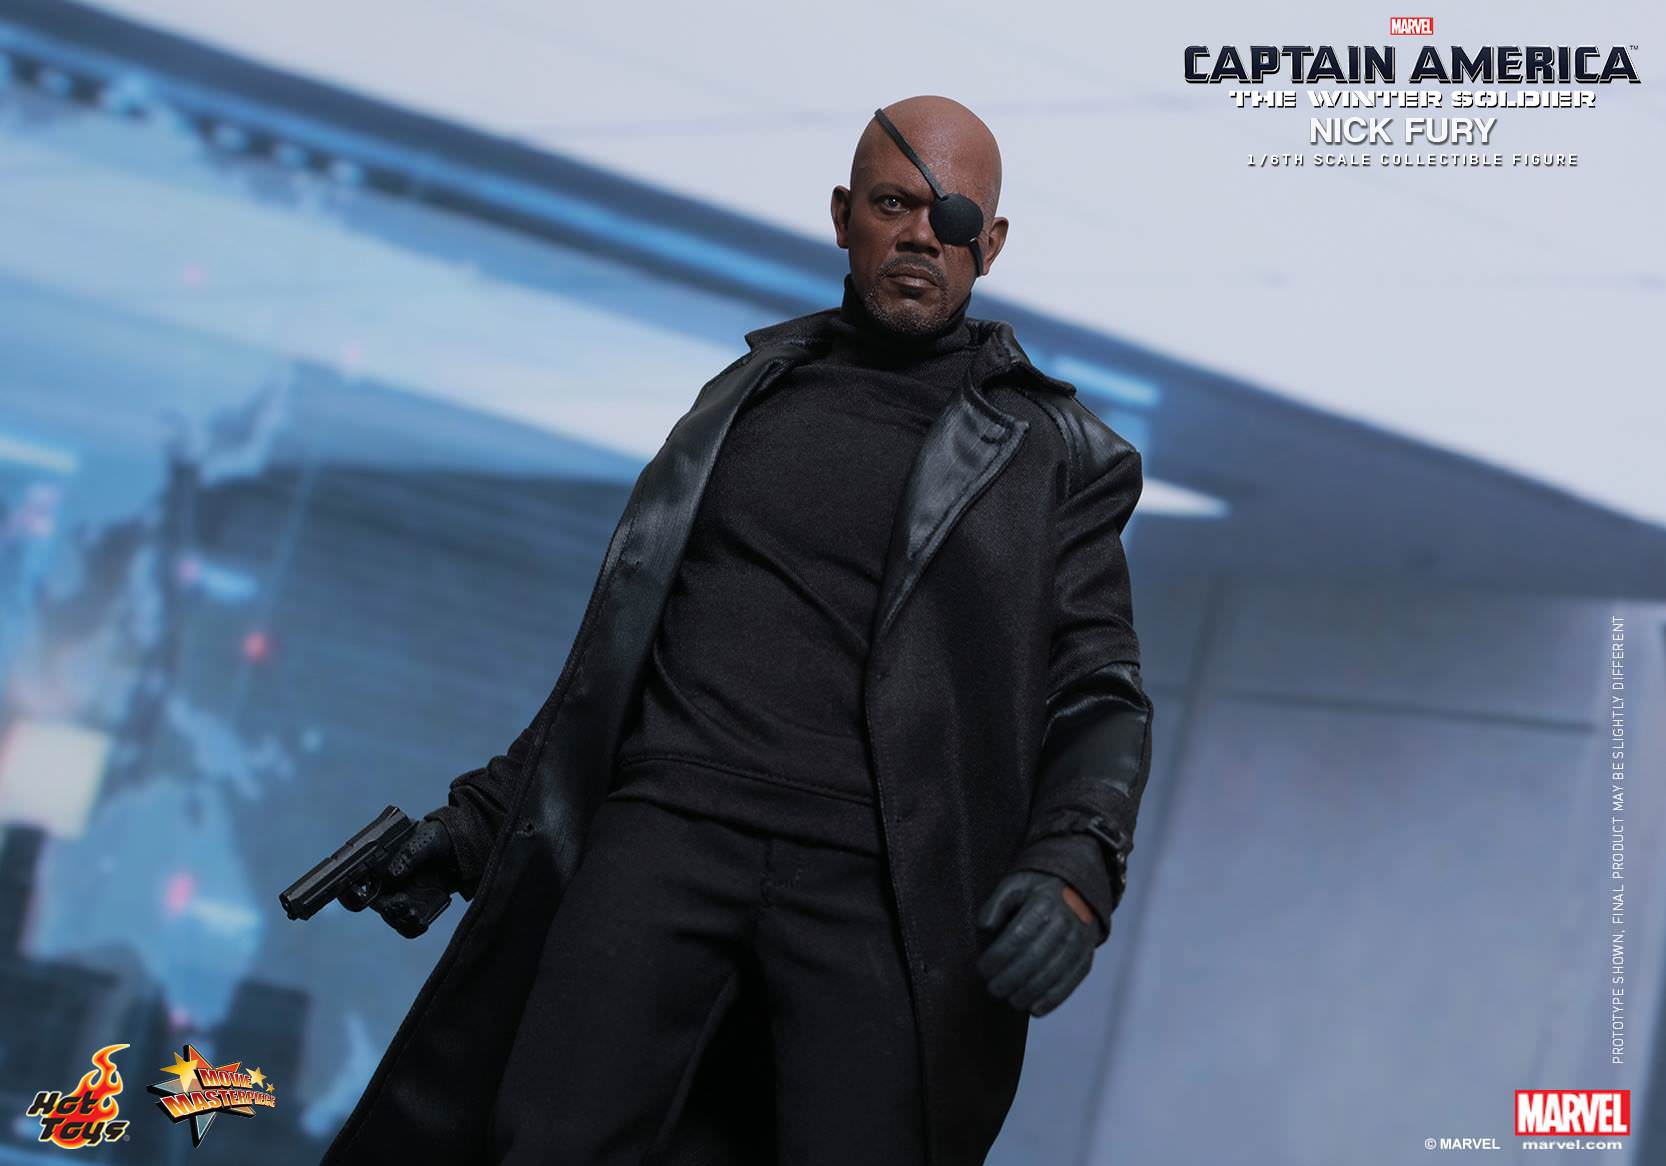 89ee5bcf77d Nick Fury is a crucial character in the Marvel Cinematic Universe as the  Director of S.H.I.E.L.D. and activating the Avengers Initiative to bring a  team ...